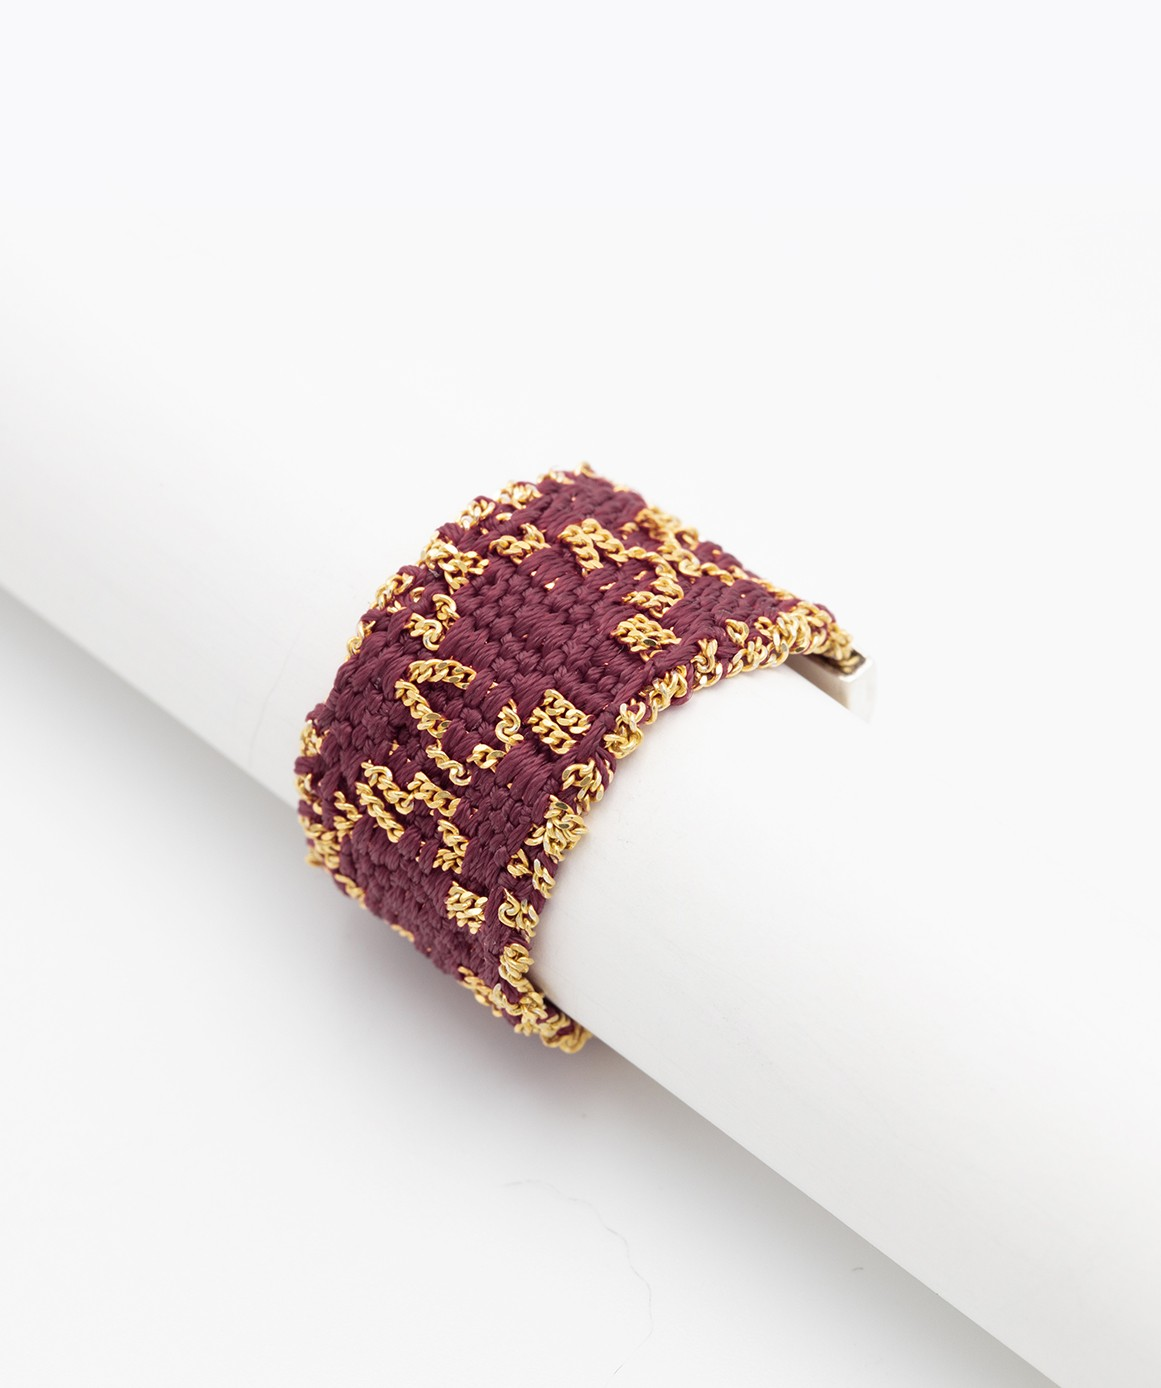 RHOMBUS Ring in Sterling Silver 18Kt. Yellow gold plated. Fabric: Bordeaux Silk